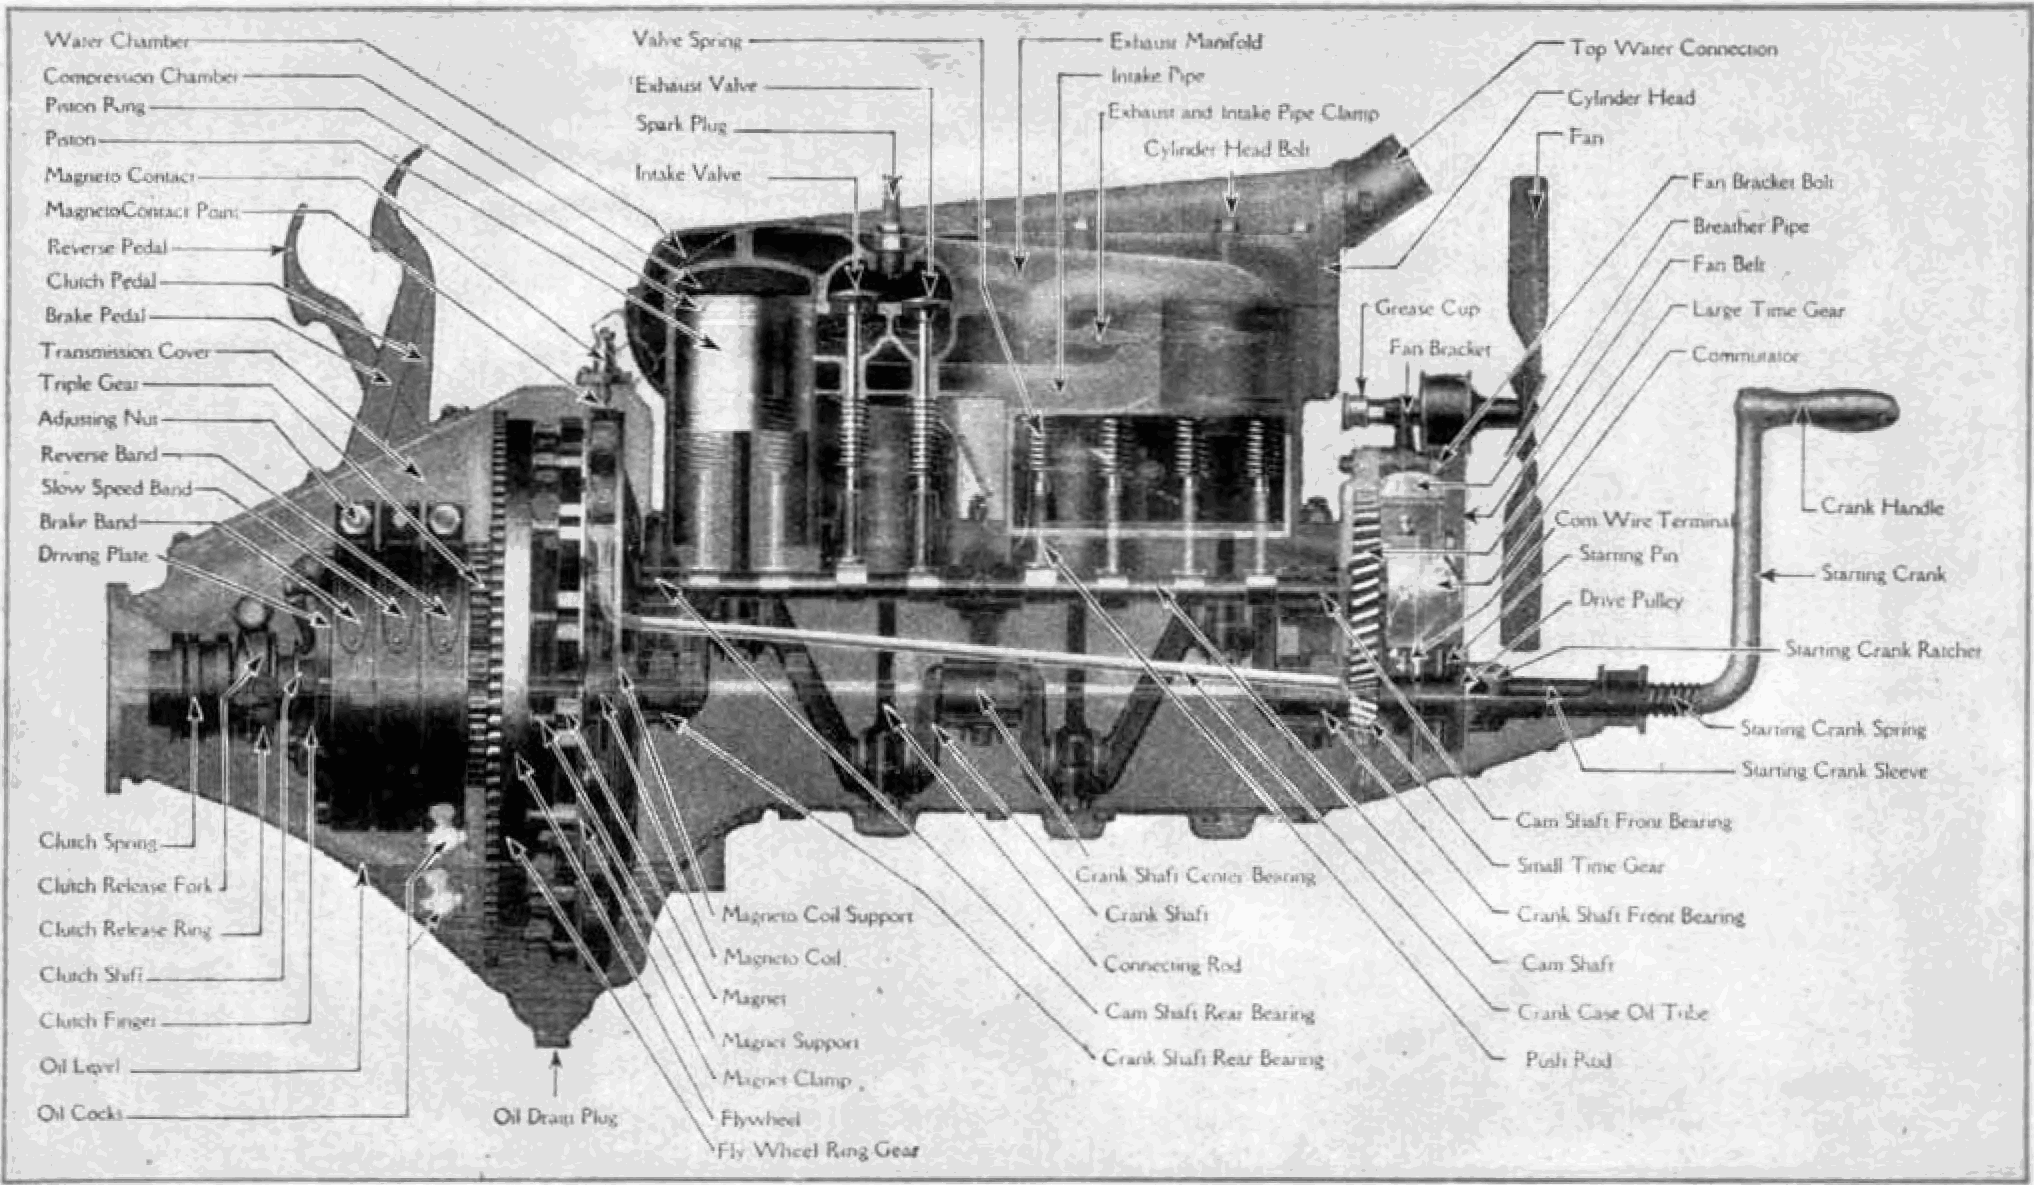 model a ford engine diagram - corvette fuel filter diagram -  dvi-d.tukune.jeanjaures37.fr  wiring diagram resource